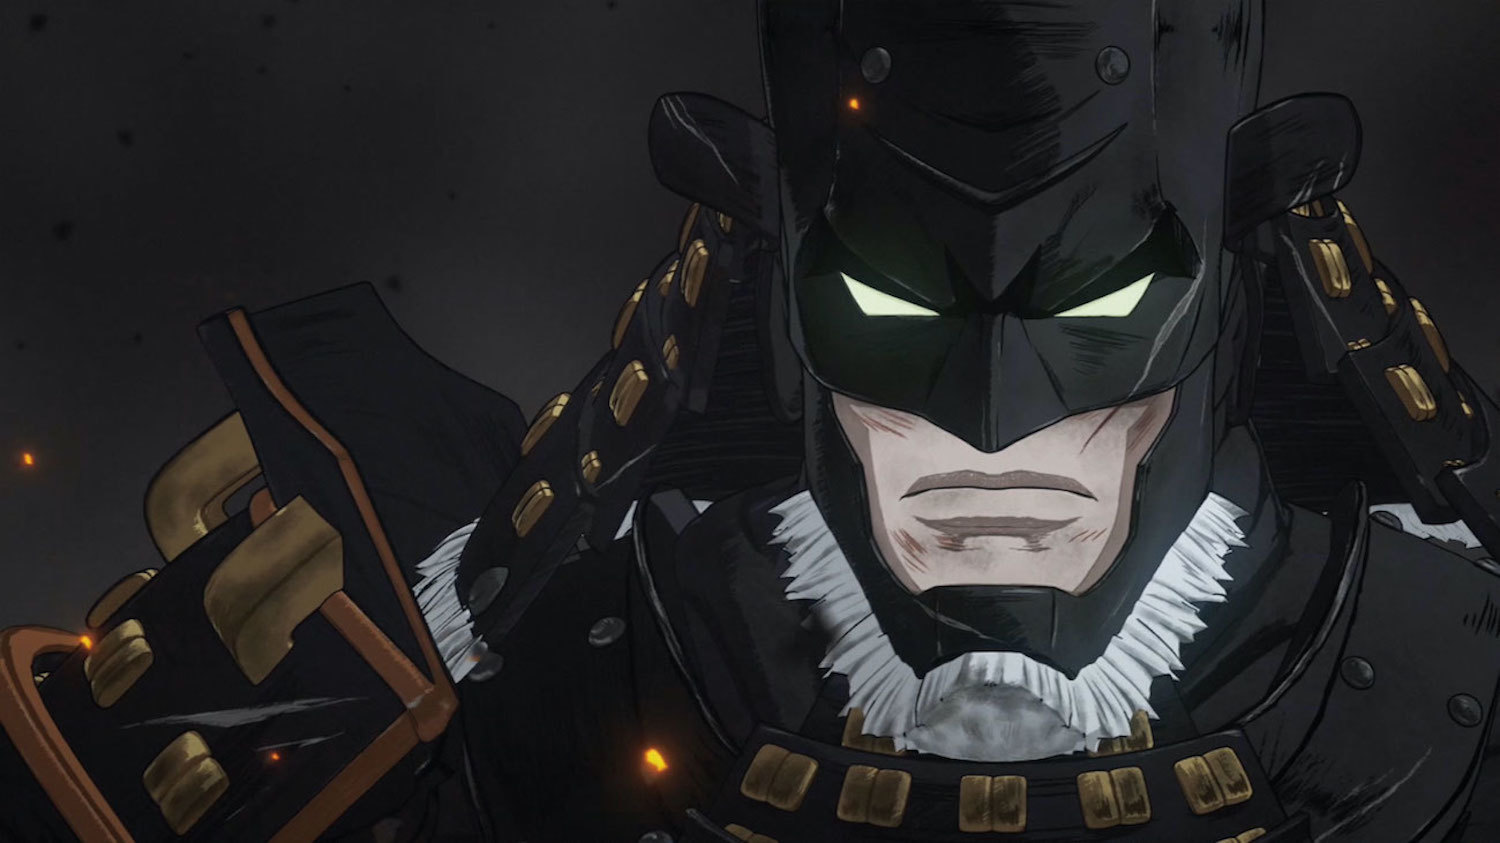 BATMAN and all related characters and elements © & ™ DC Comics and Warner Bros. Entertainment Inc. (s21)